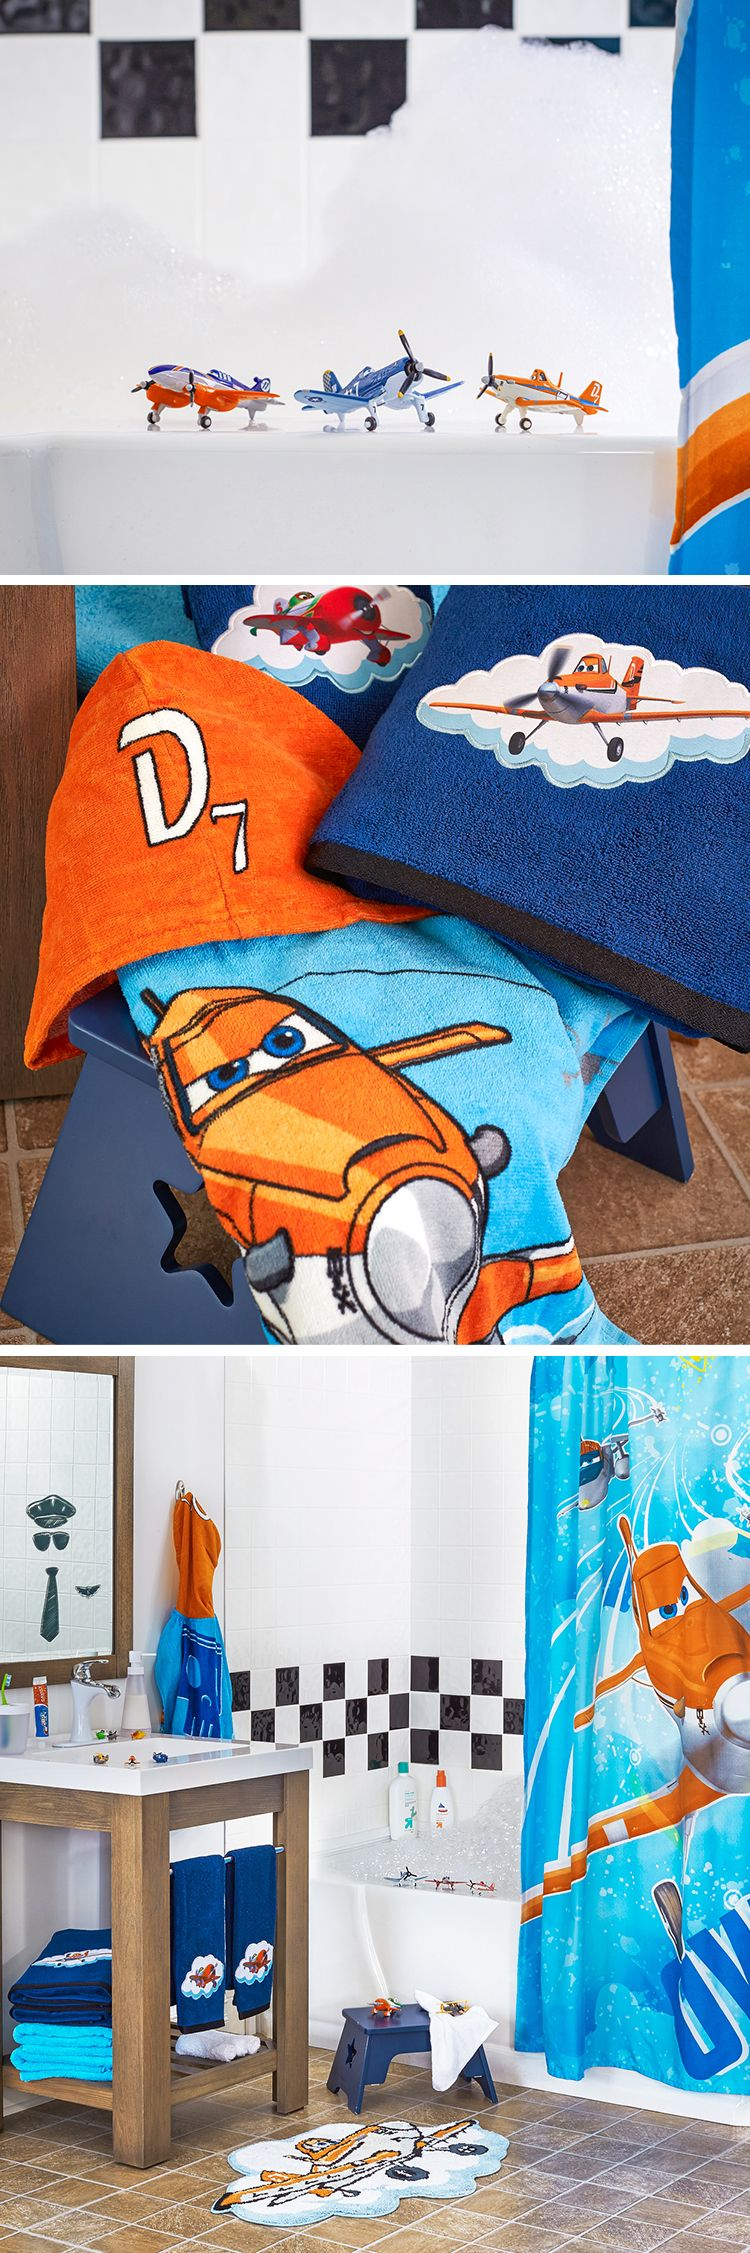 Make Bathroom Time Fun For Kids With Disney Planes Accessories Starring Dusty